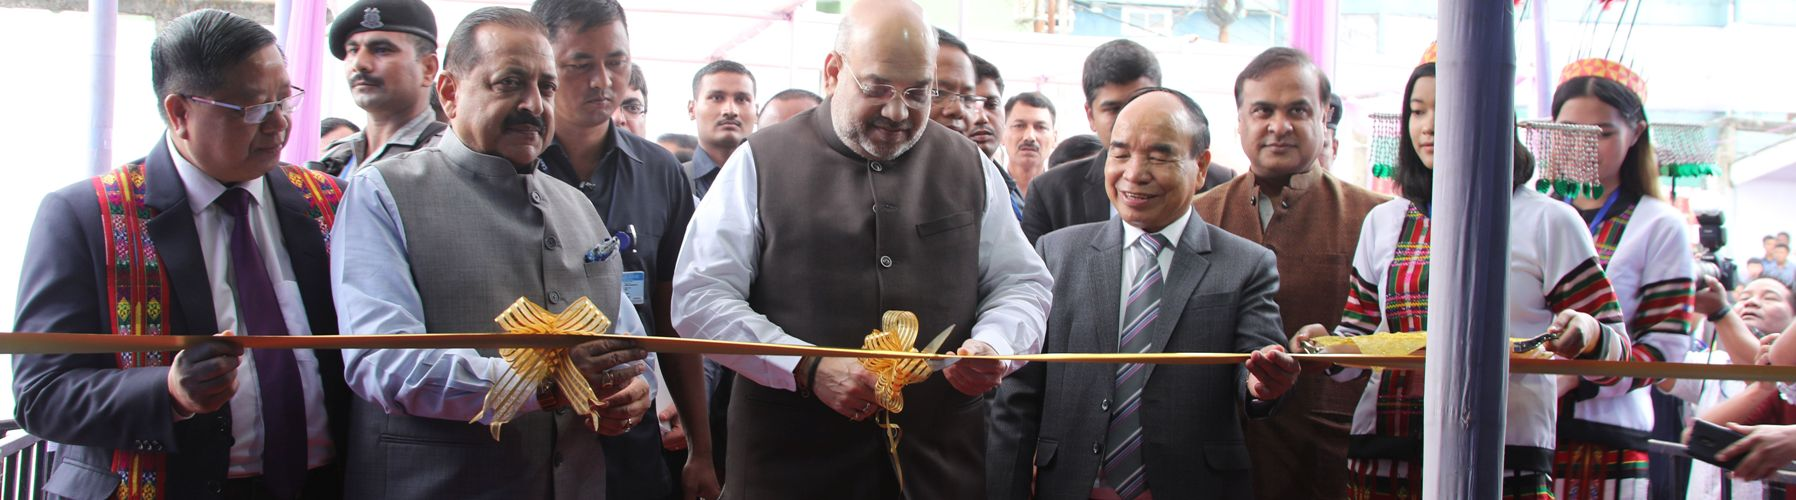 Union Minister for Home Affairs, Shri Amit Shah inaugurating the North East Handloom and Handicraft Exhibition in Aizawl, Mizoram  on October 5, 2019.